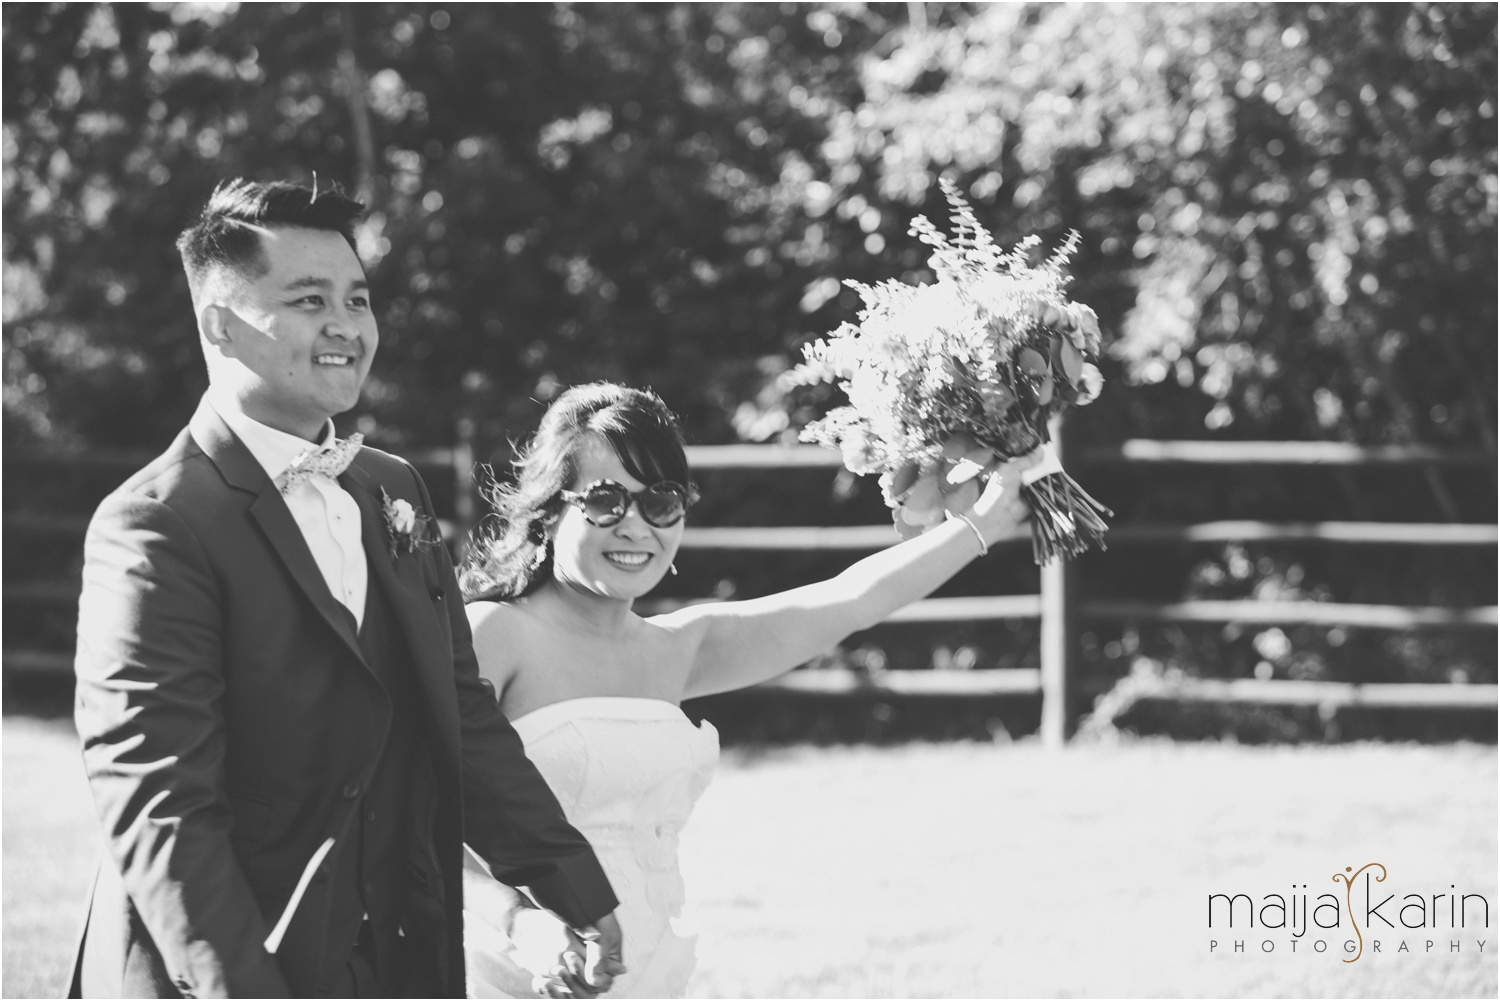 Mountain-Springs-Lodge-Leavenworth-Washington-Wedding-Photographer-Majiin-Karin-Photography_58.jpg